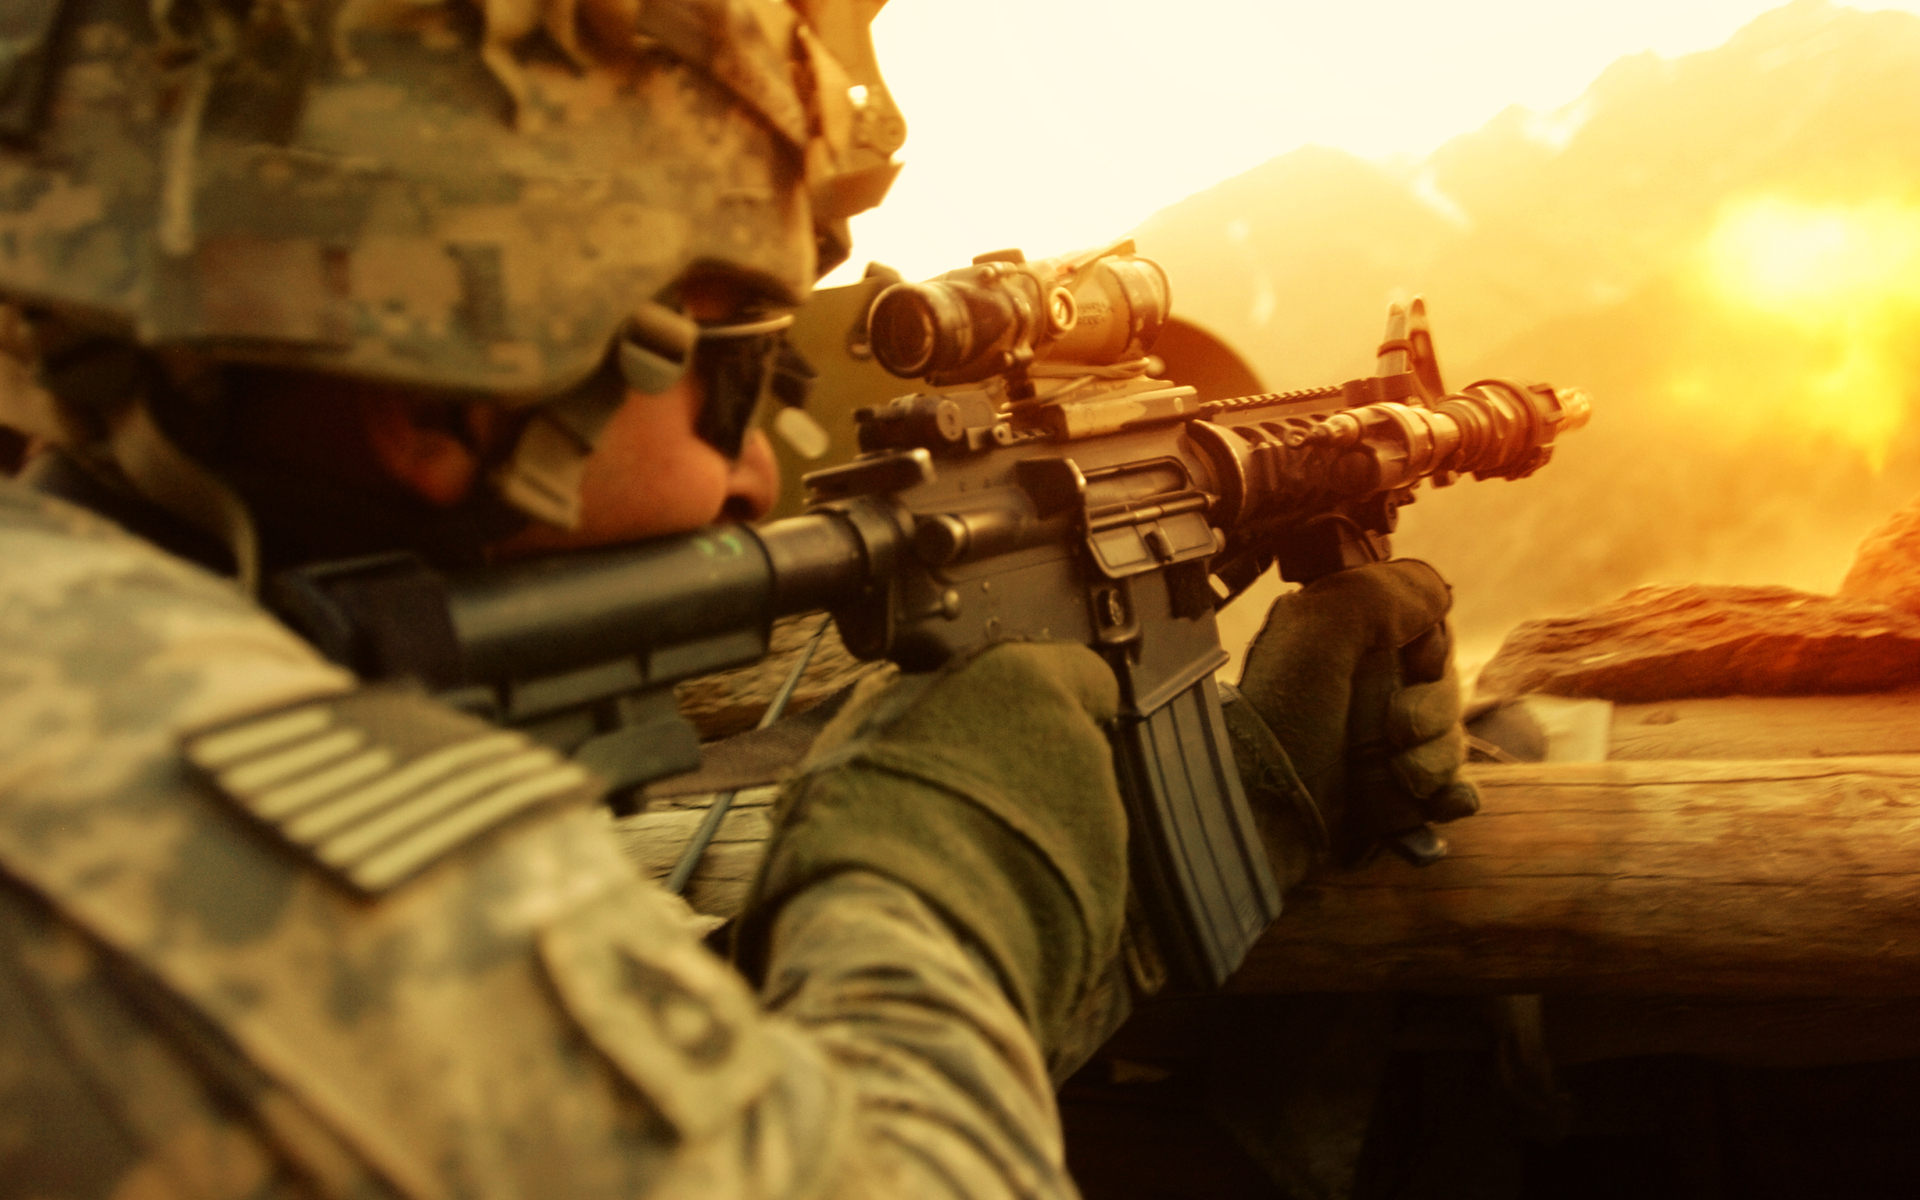 wallpaper details file name army gun military wallpapers category 1920x1200